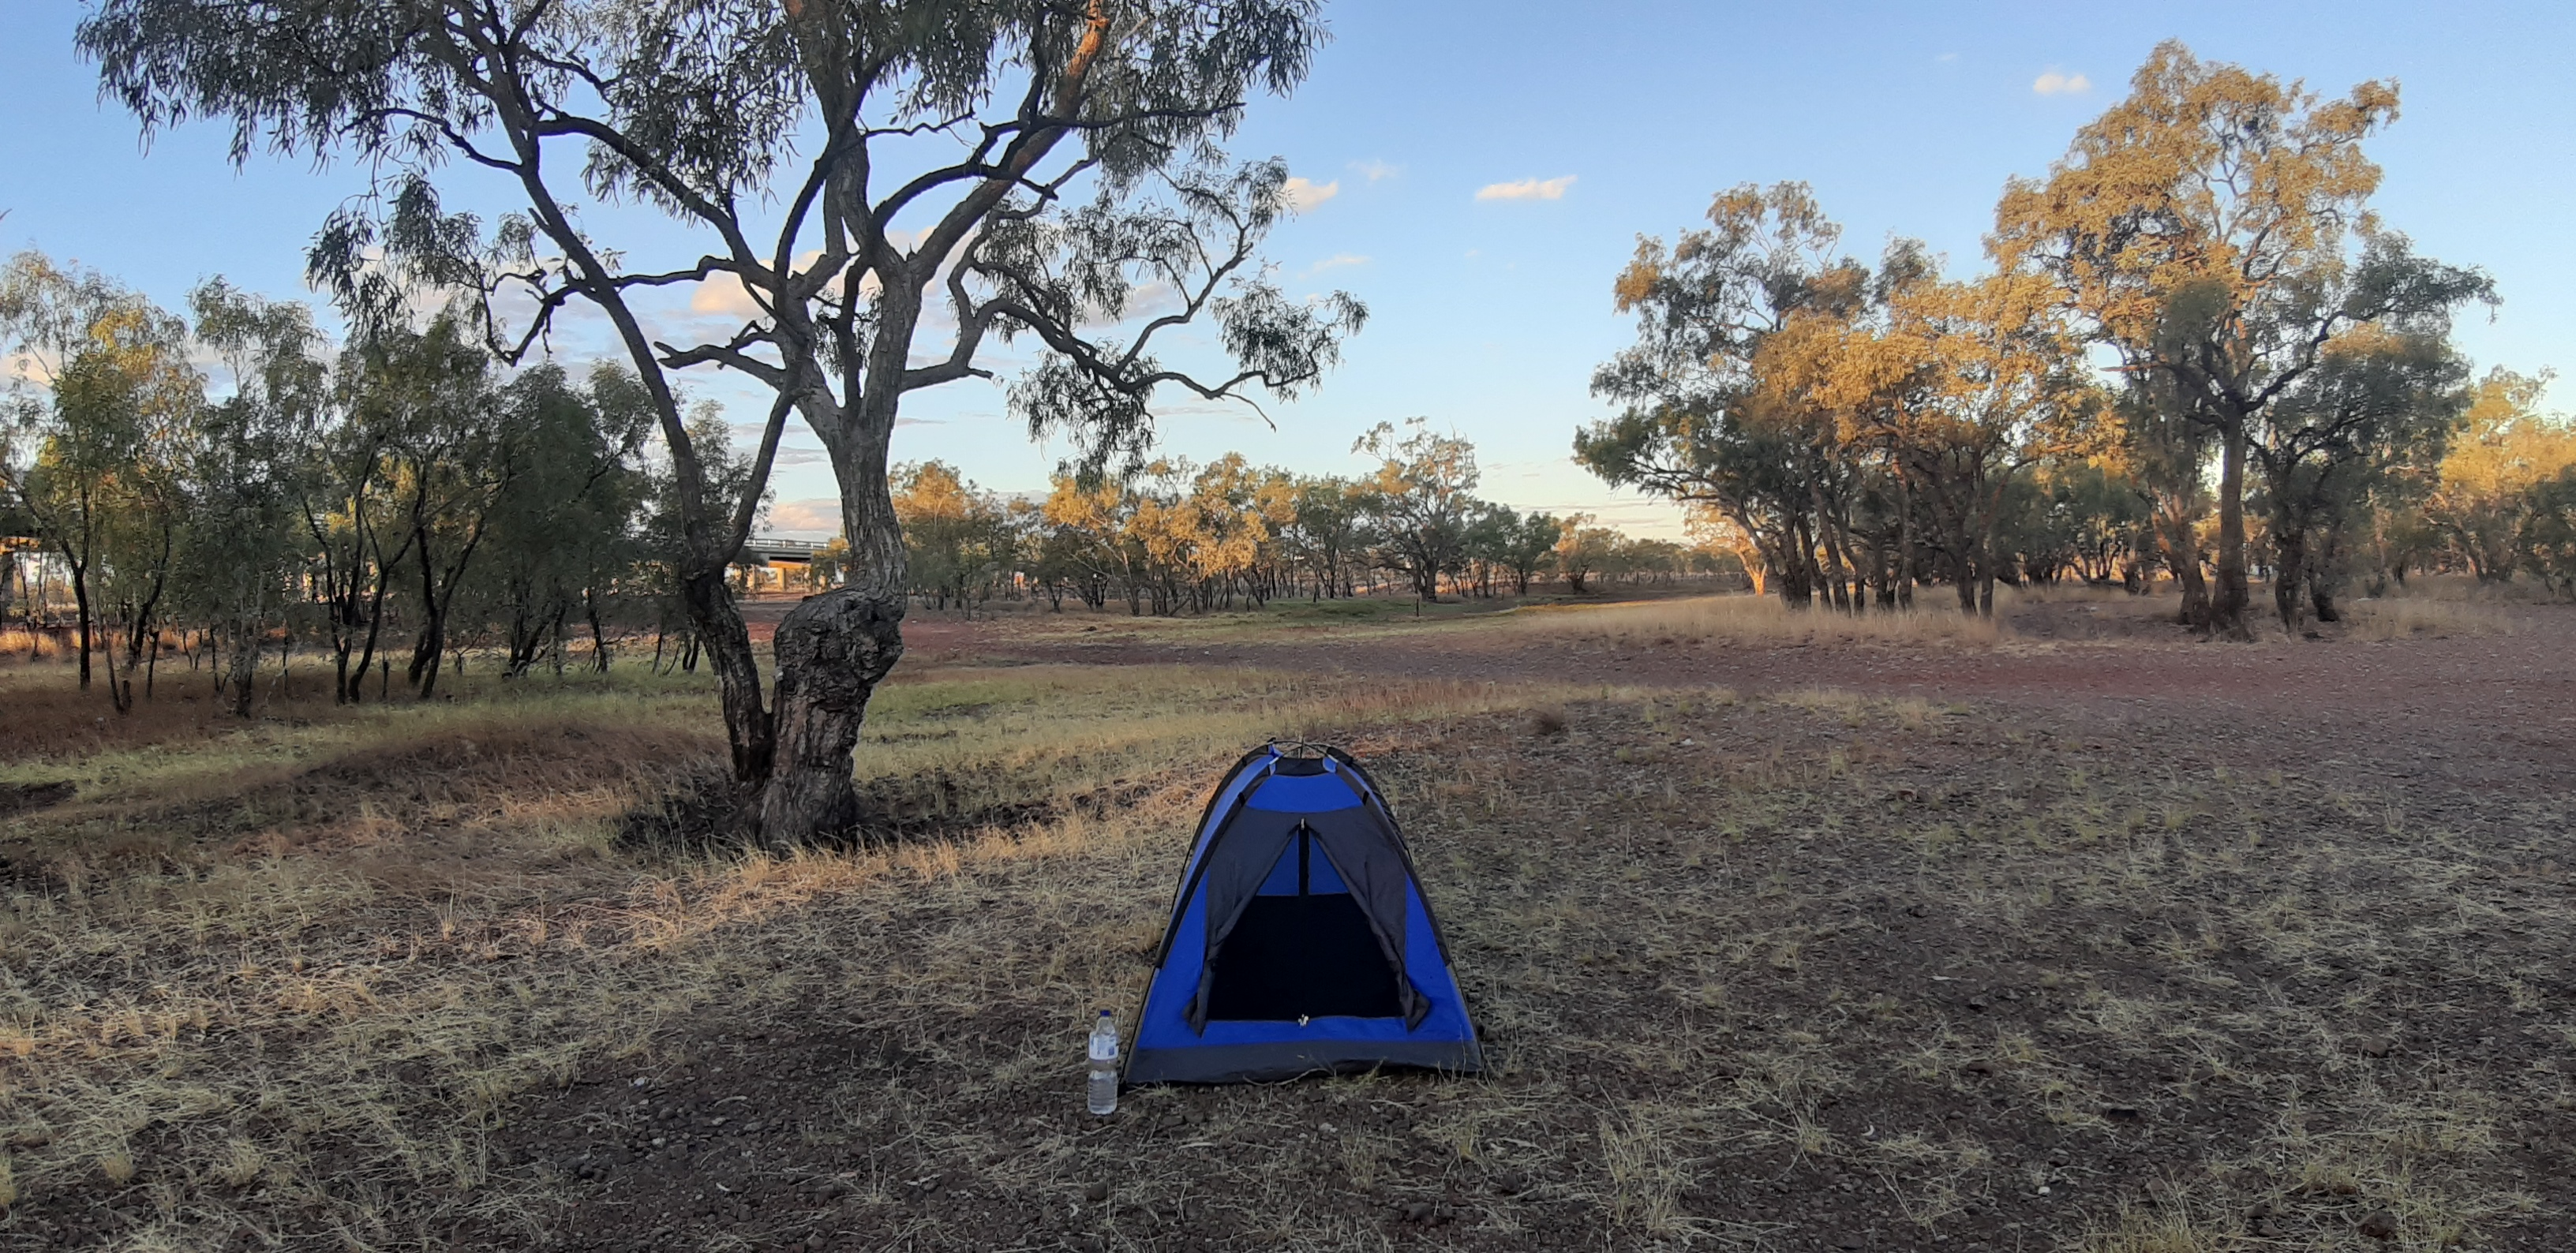 My campsite in Camooweal